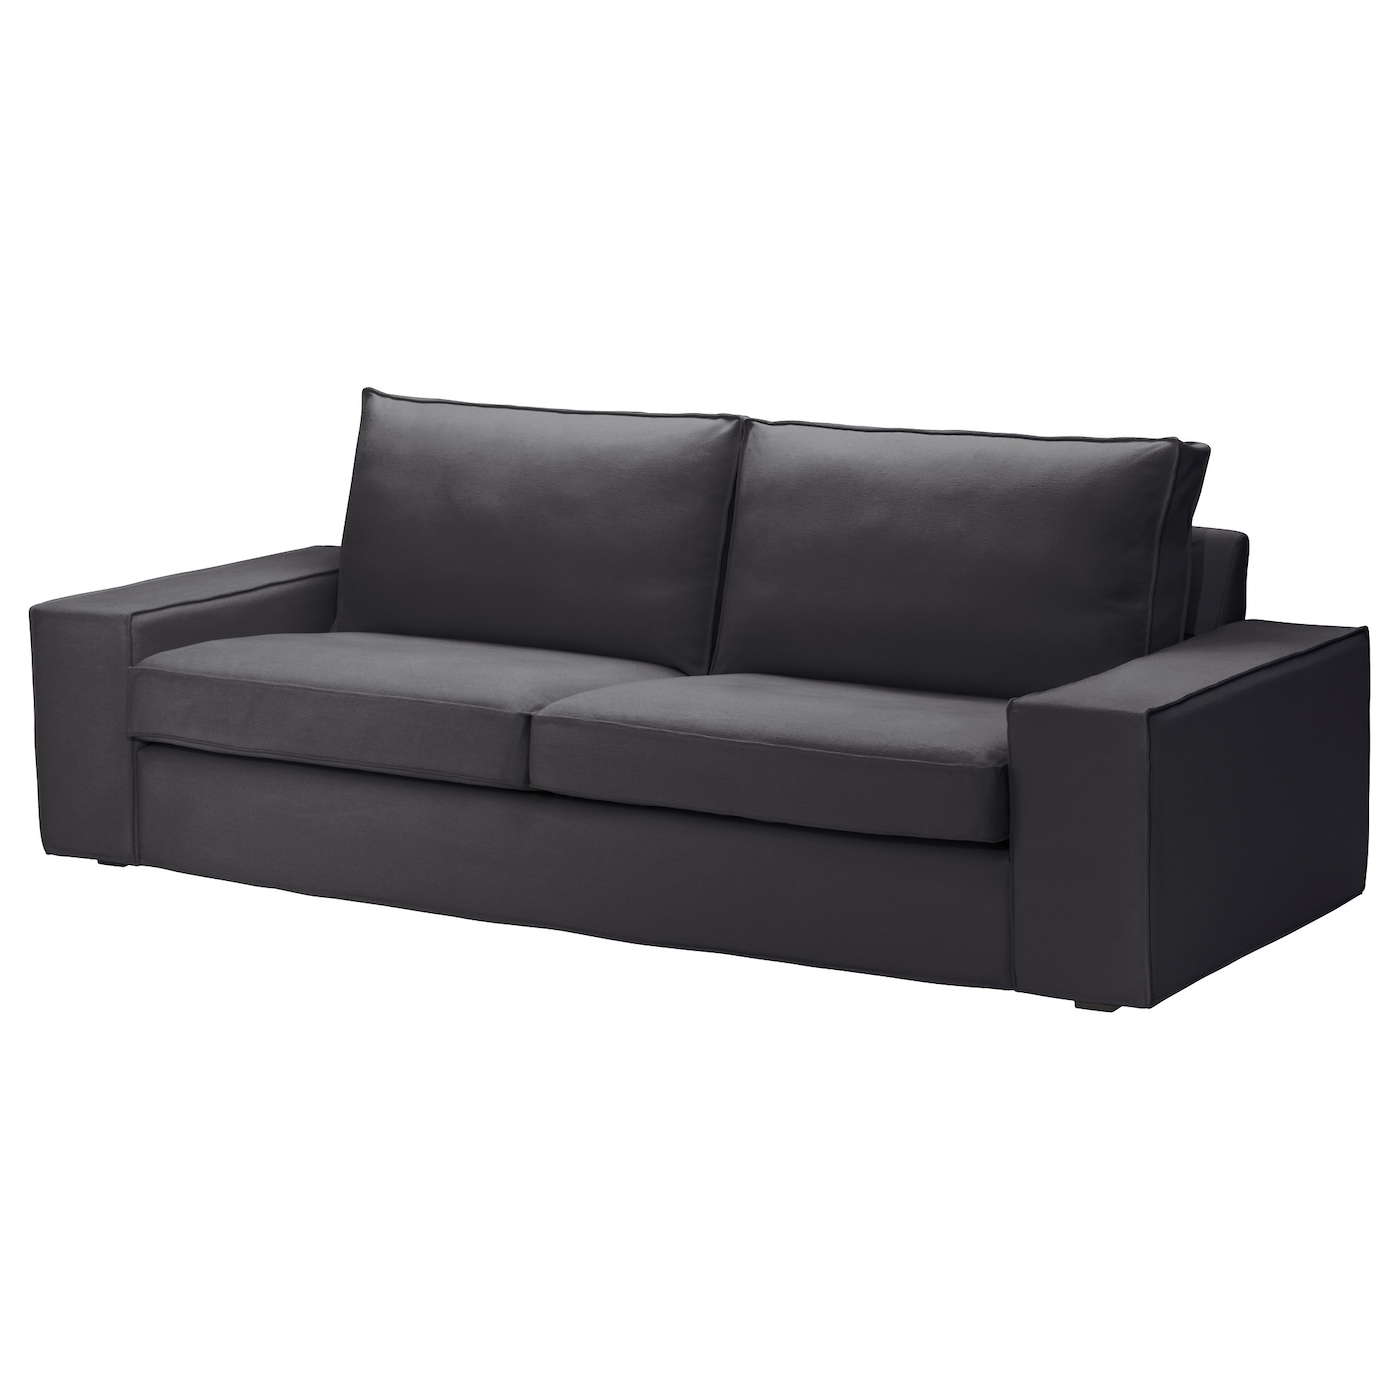 kivik three seat sofa dansbo dark grey ikea. Black Bedroom Furniture Sets. Home Design Ideas